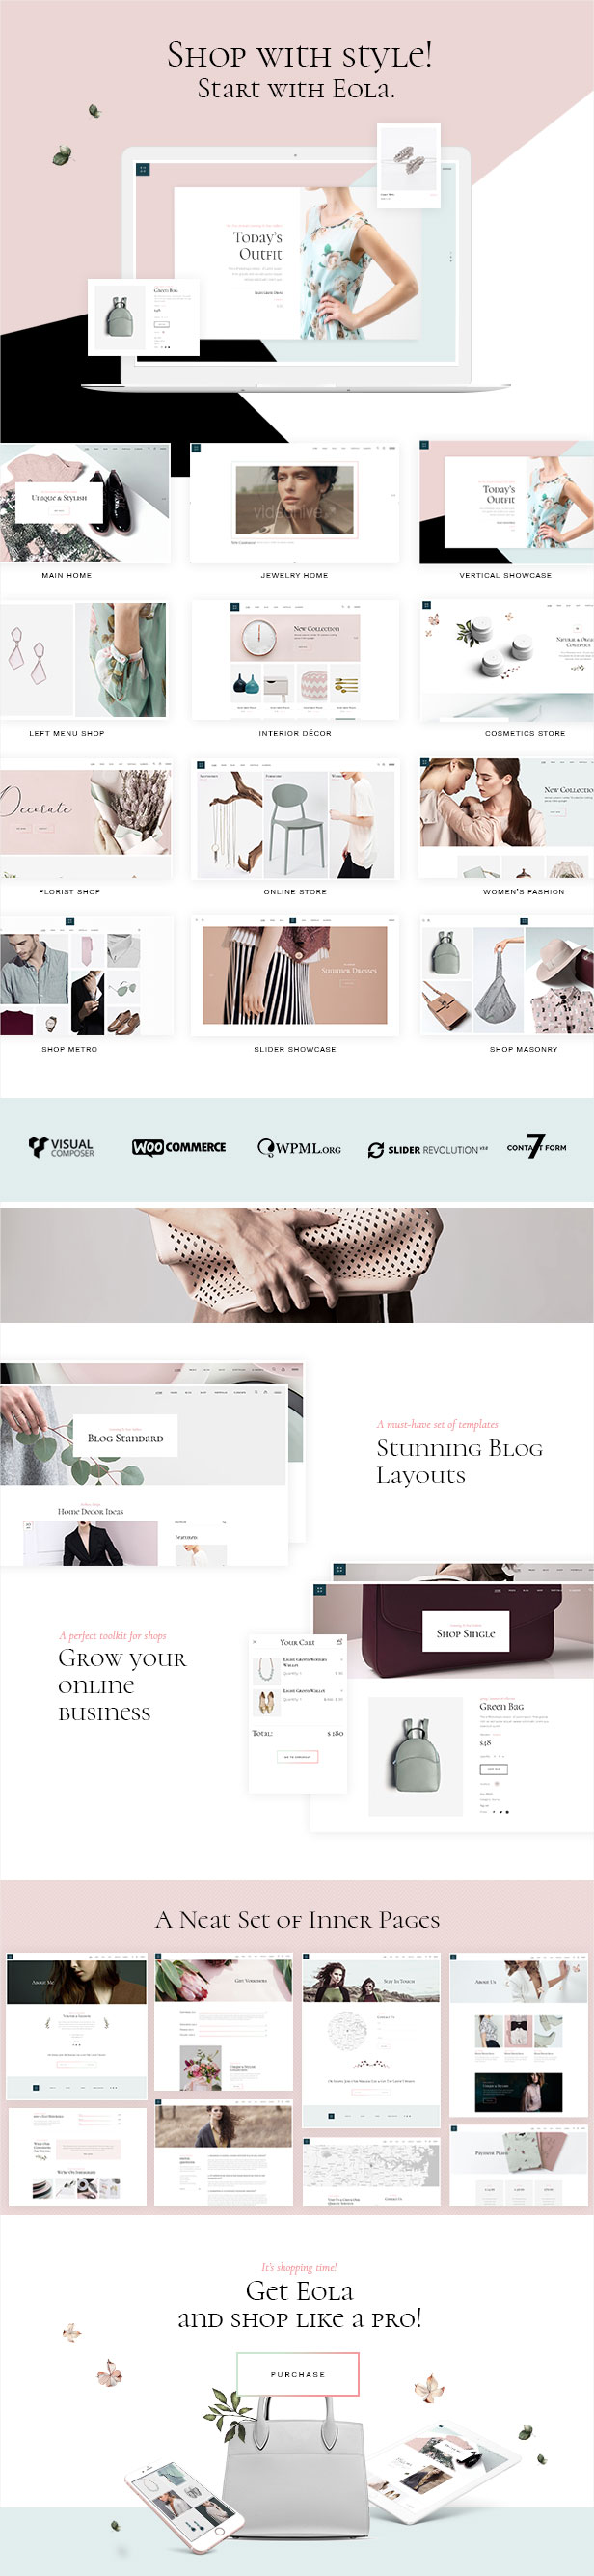 Eola - An Elegant, Multipurpose WooCommerce Theme - 1